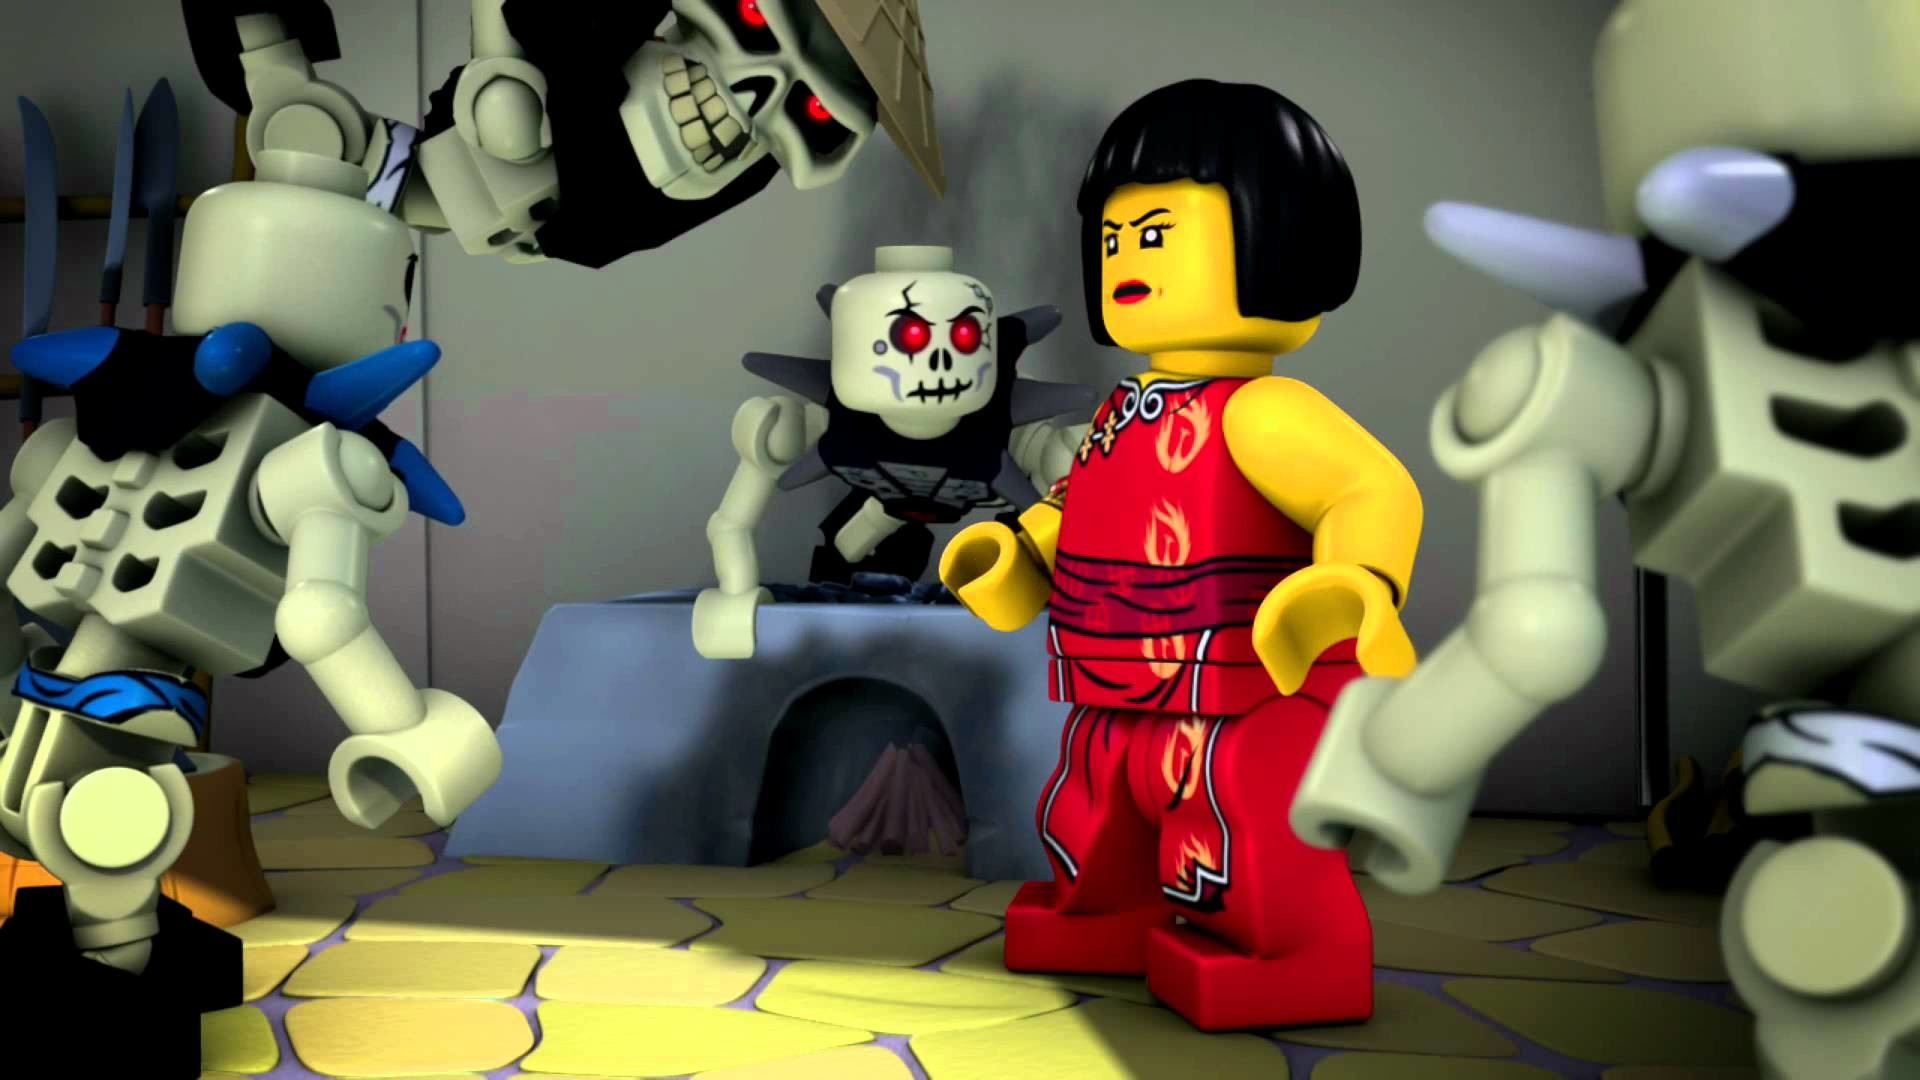 1920x1080 LEGO® Ninjago Mini-Movie #1 - Secrets of the Blacksmith